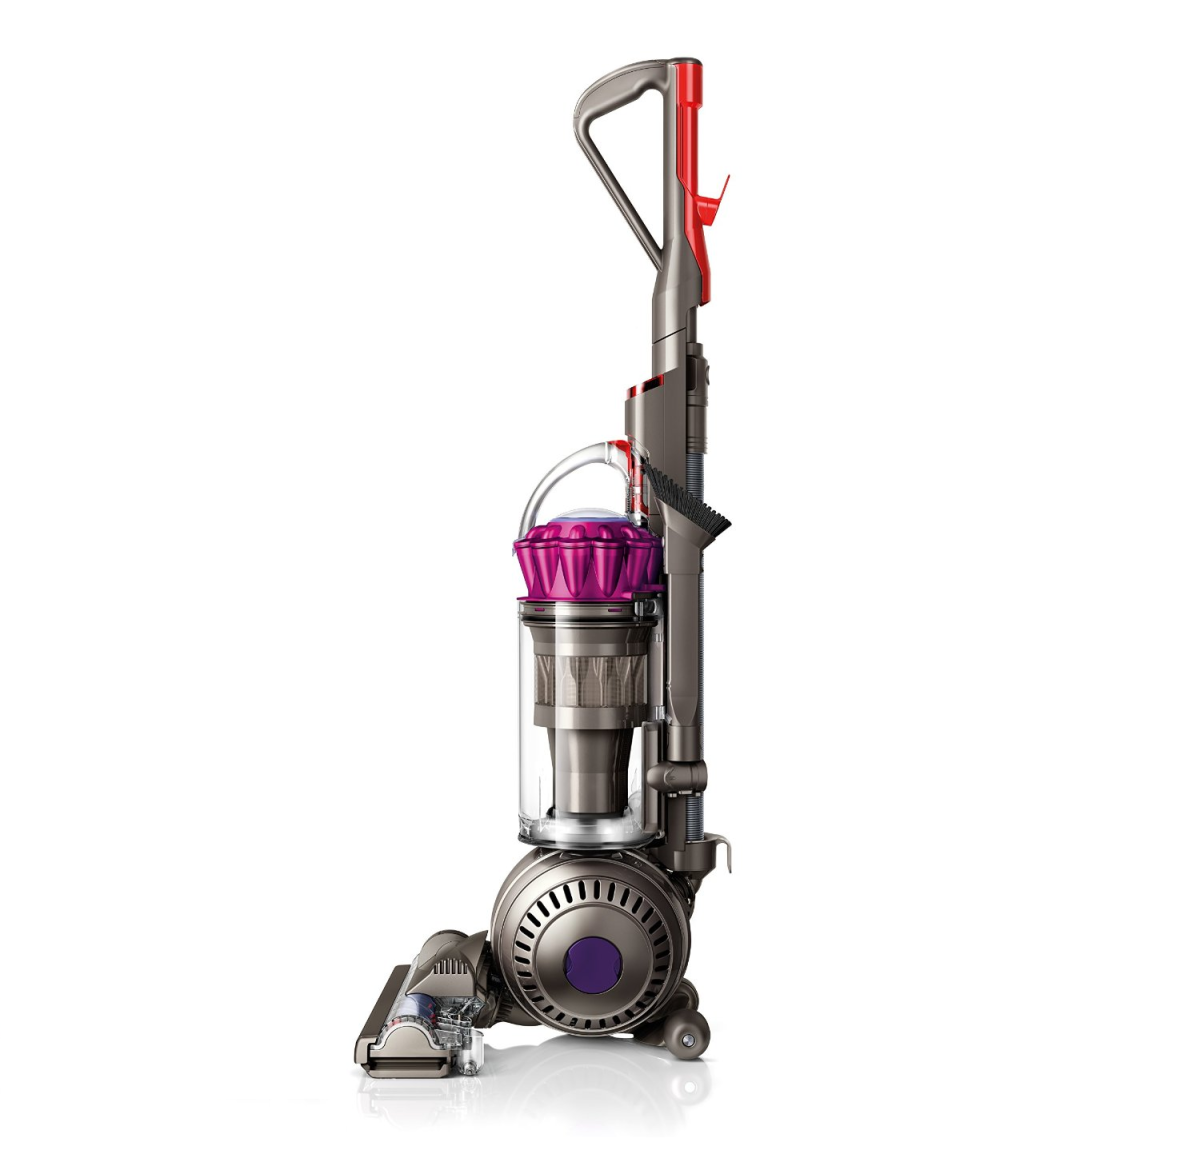 Best Dyson Vacuum for the Money 2017 Review